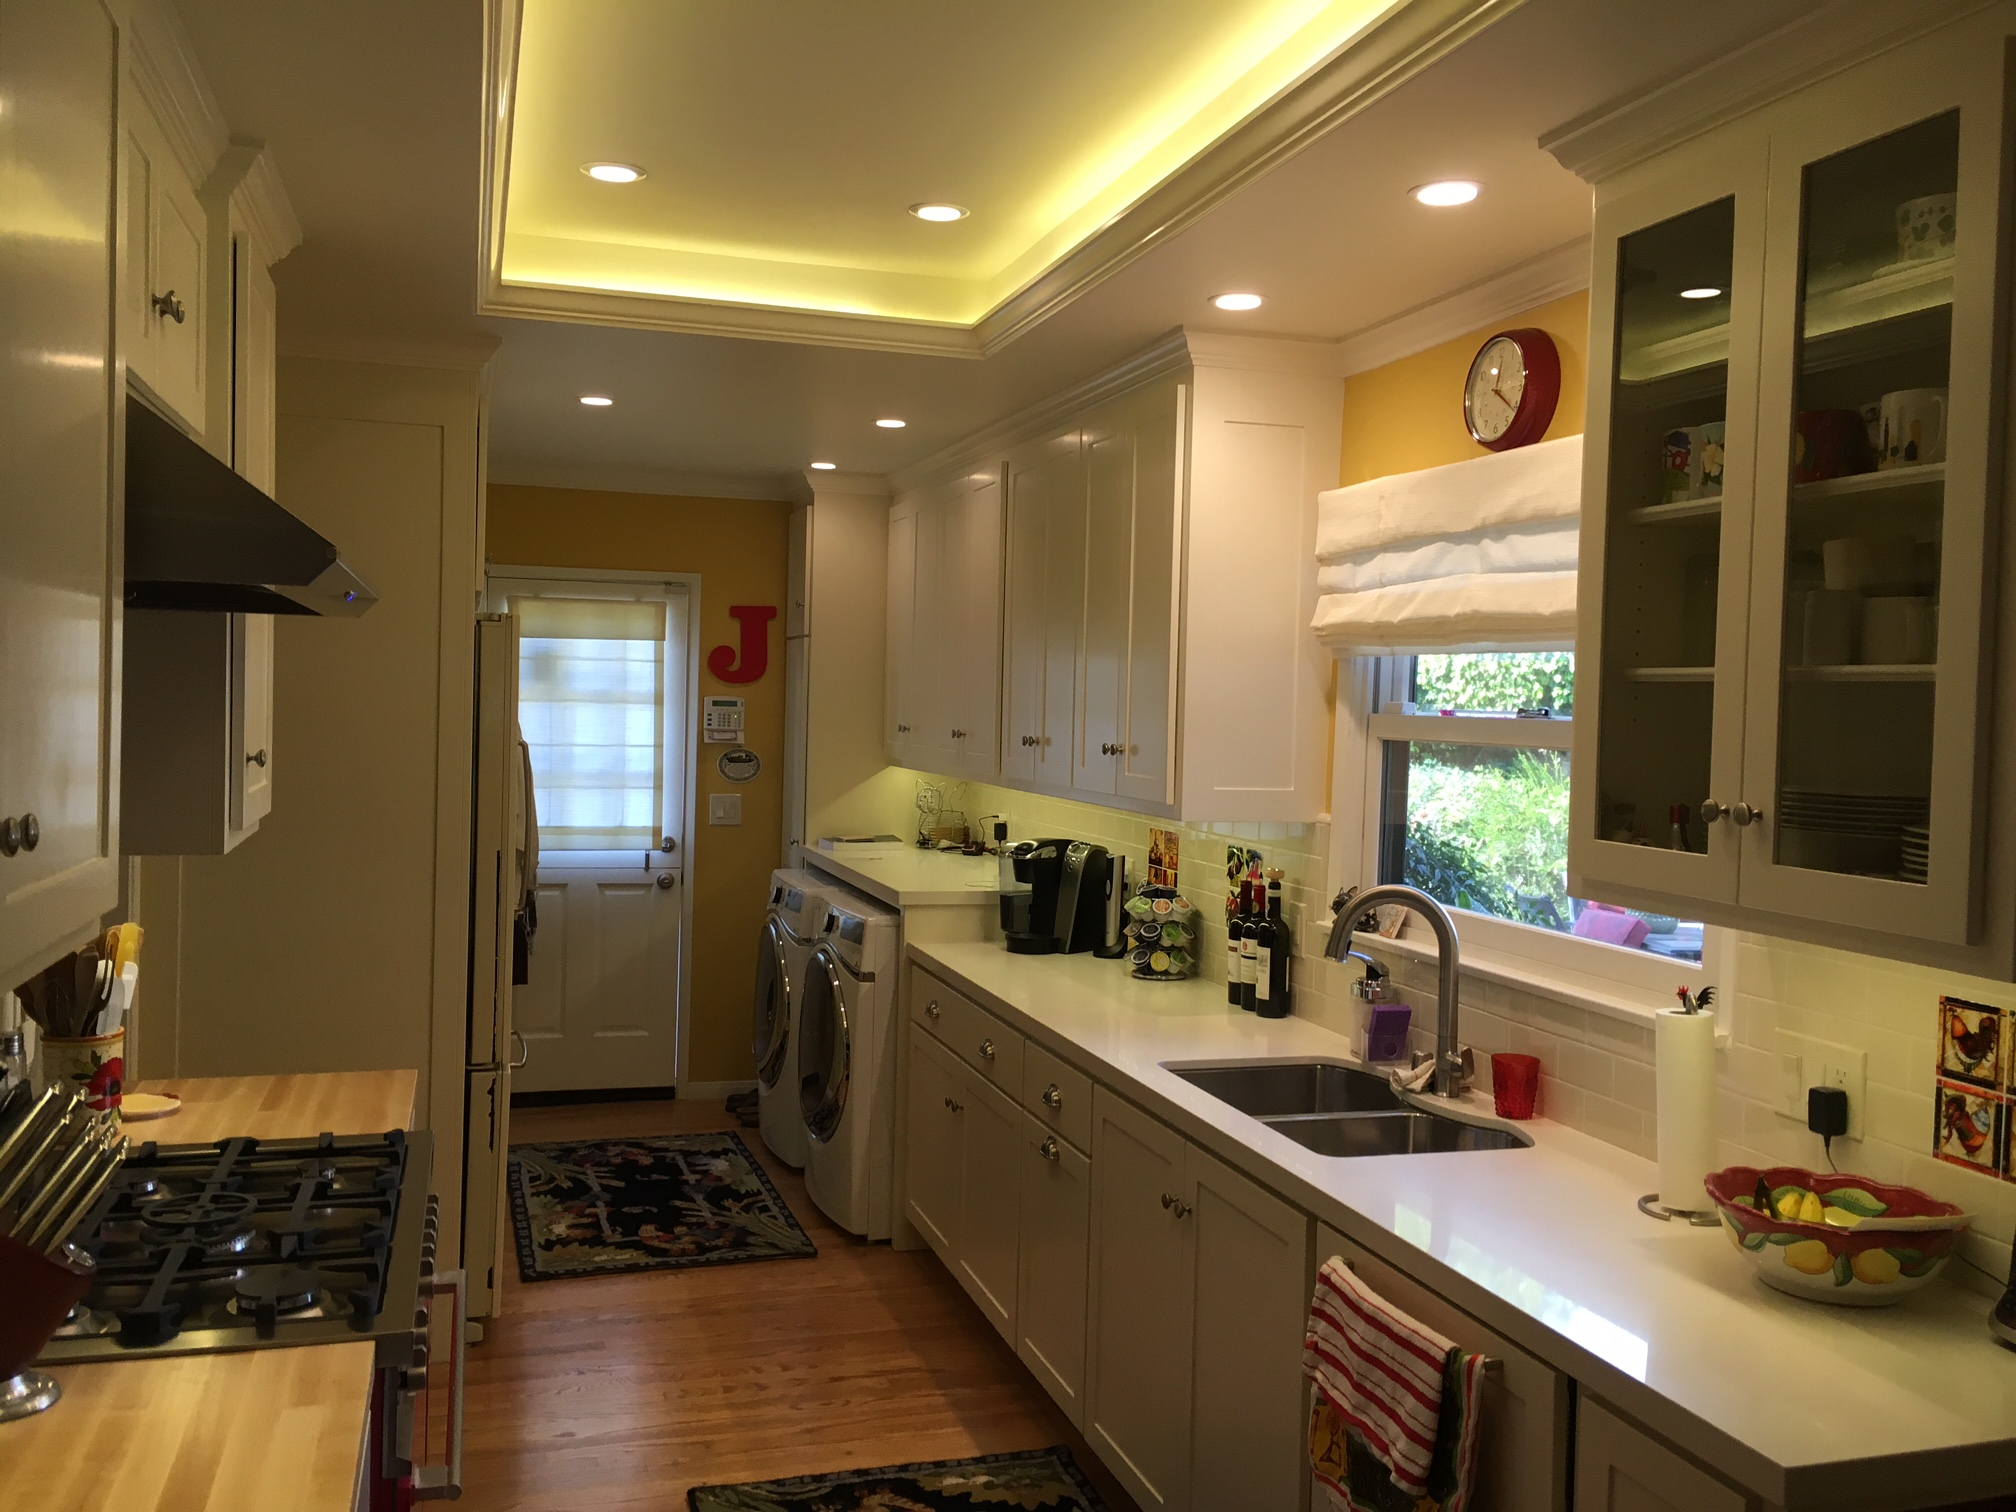 Contacting Jim - Completed Kitchen Remodel